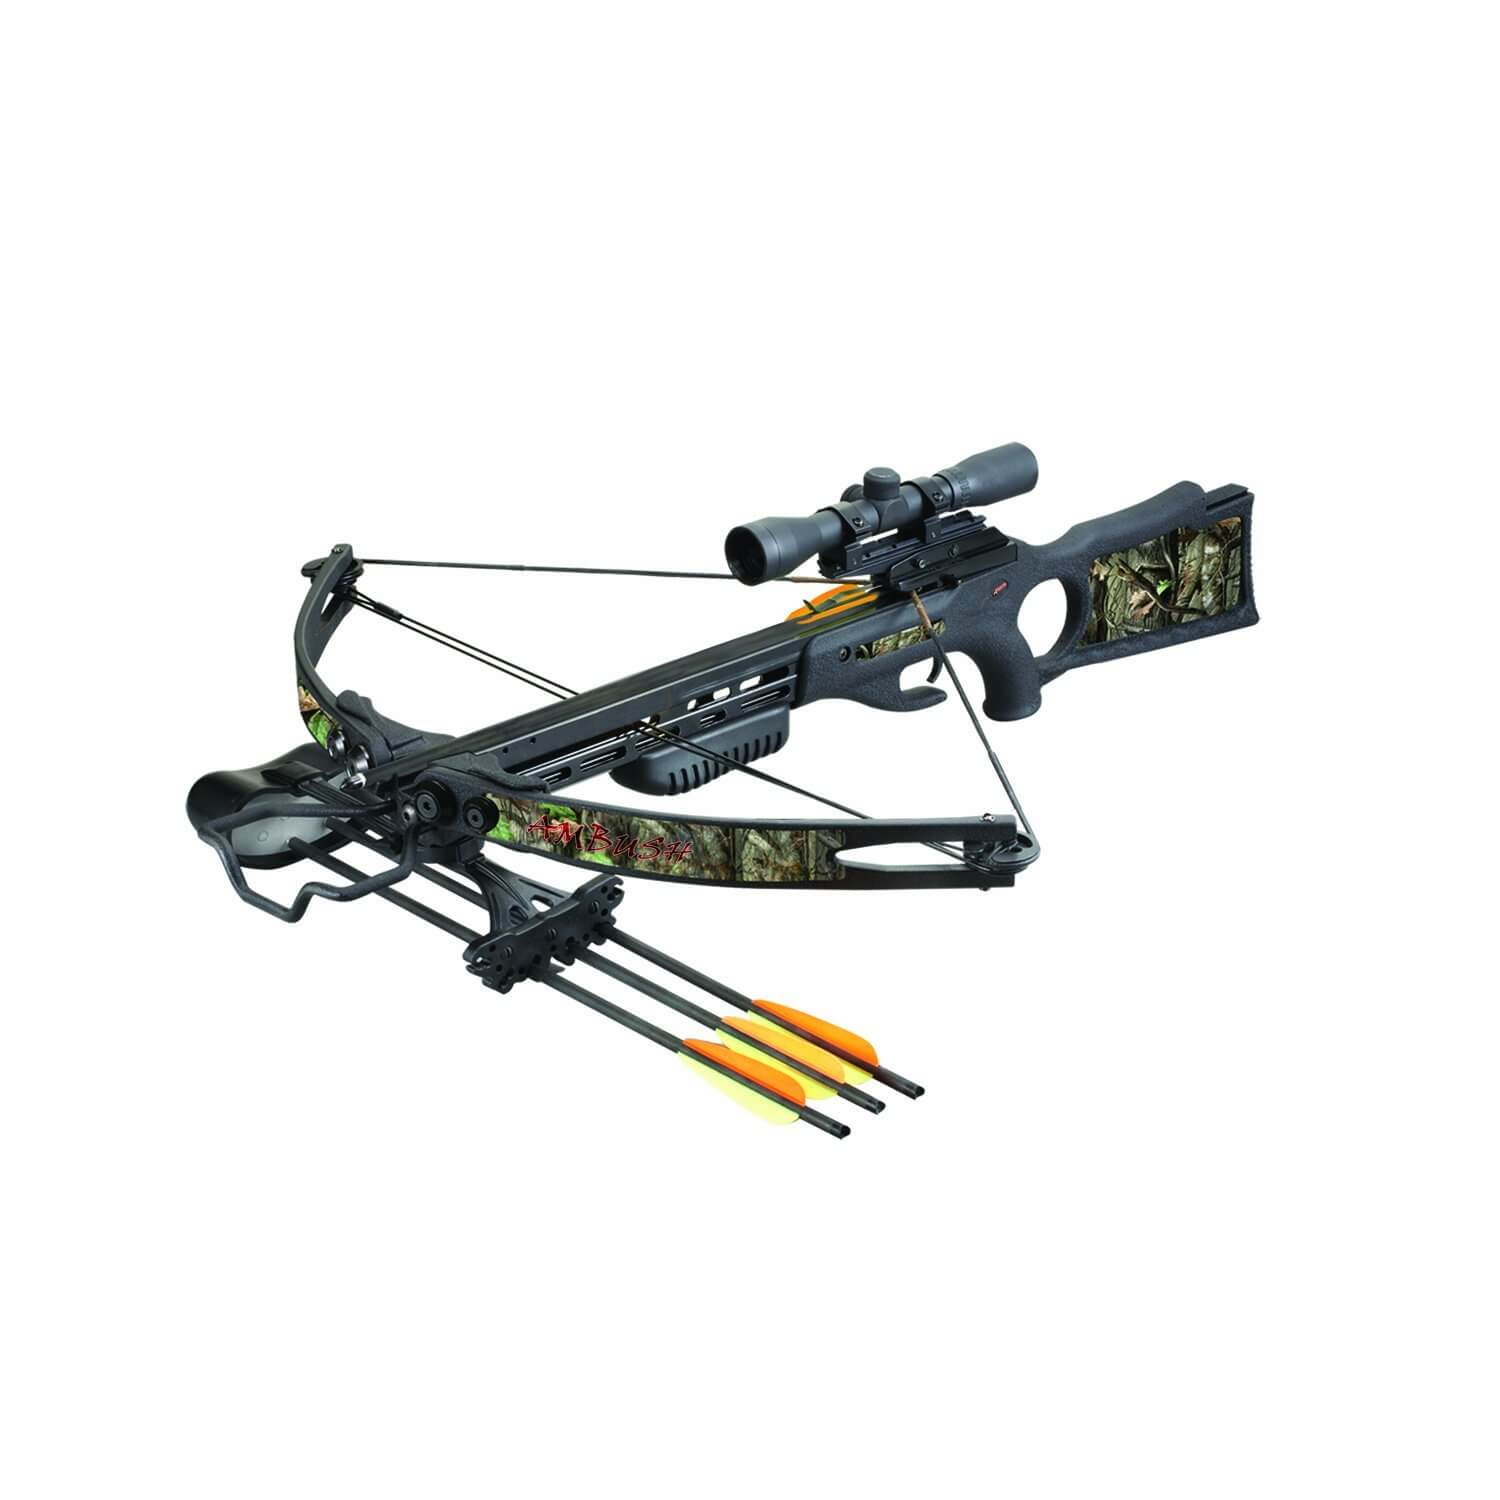 Why The SA Sports Ambush Crossbow